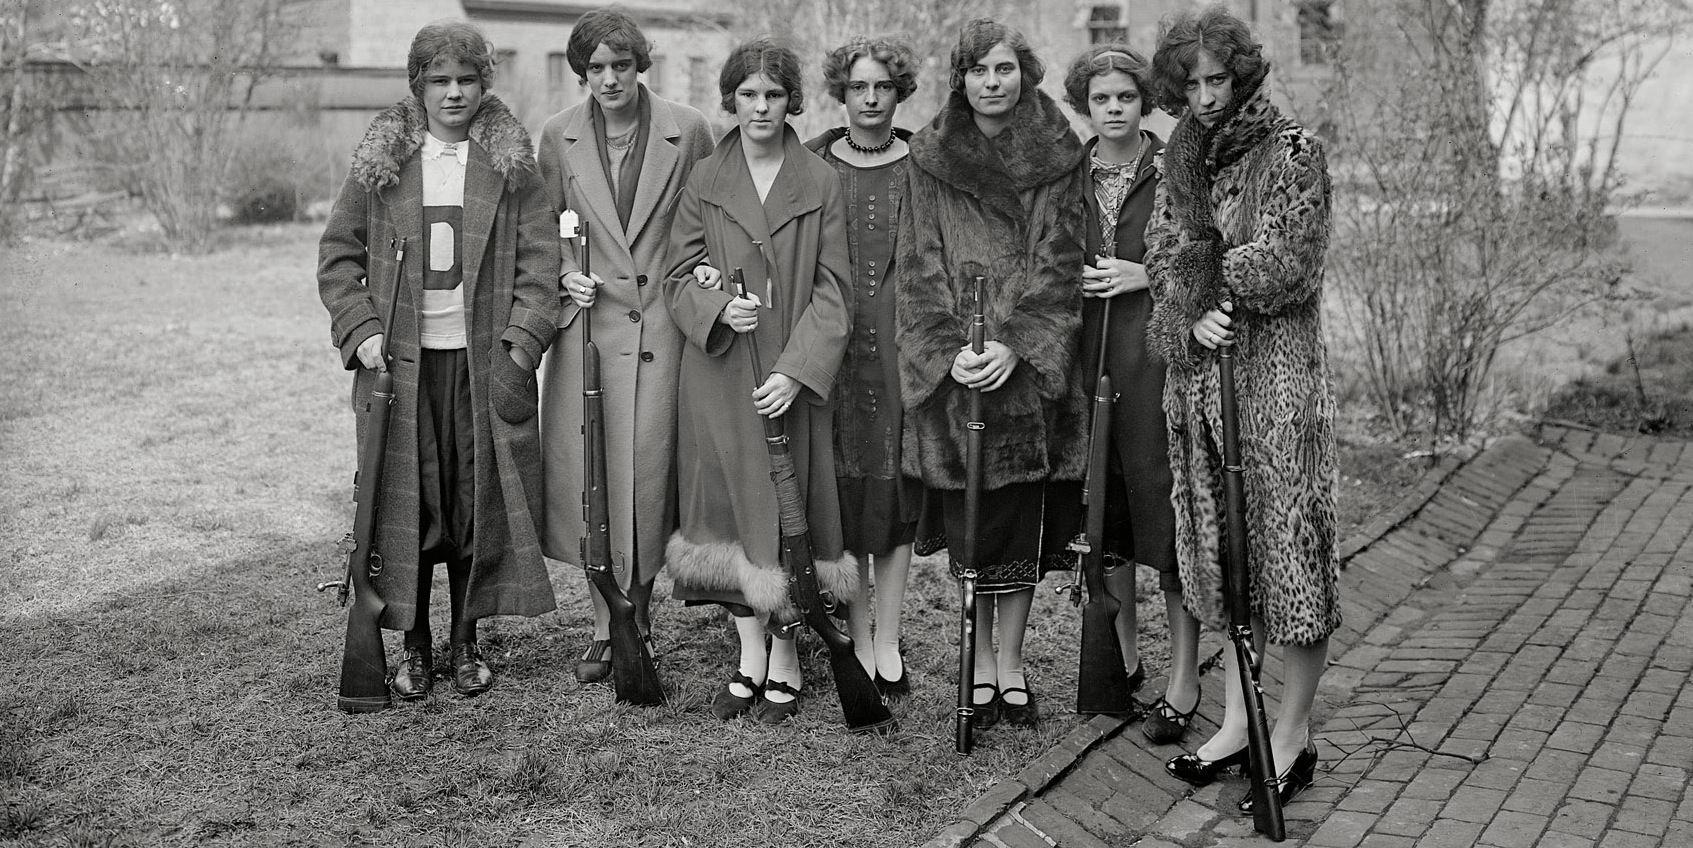 1925 Drexel Women's Rifle Team